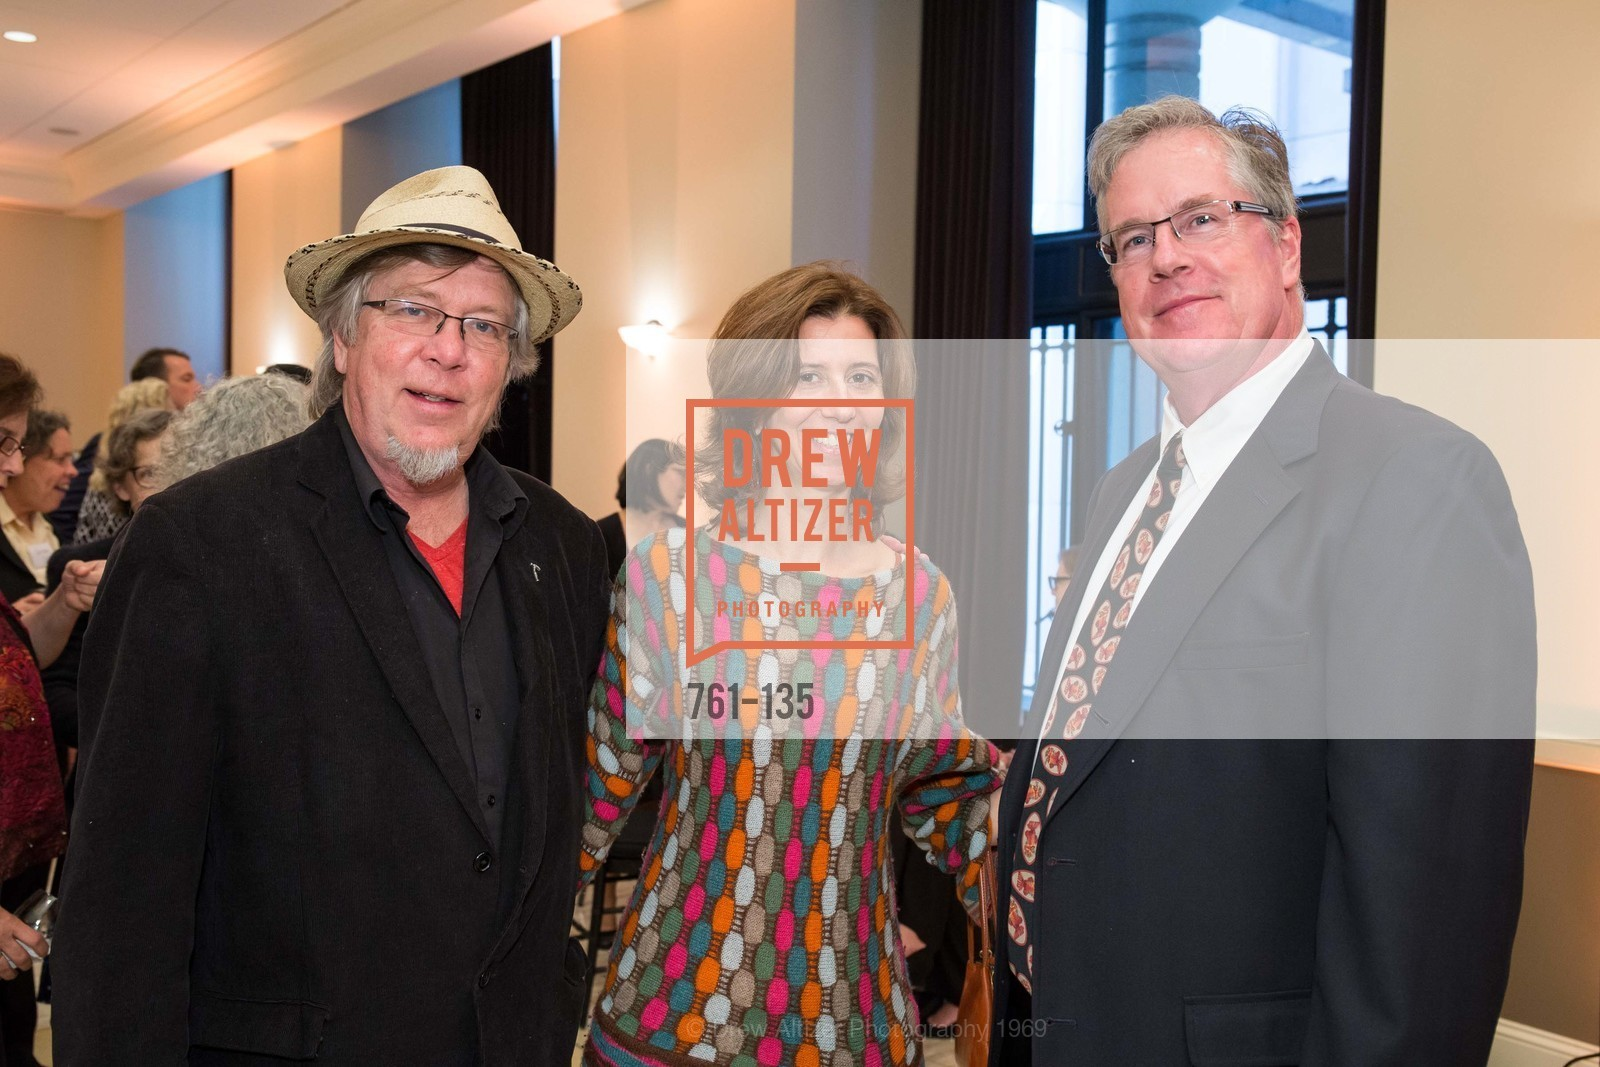 Denny Larson, Tim Little, Center for Environmental Health  2015 Gala, Bently Reserve, May 27th, 2015,Drew Altizer, Drew Altizer Photography, full-service agency, private events, San Francisco photographer, photographer california